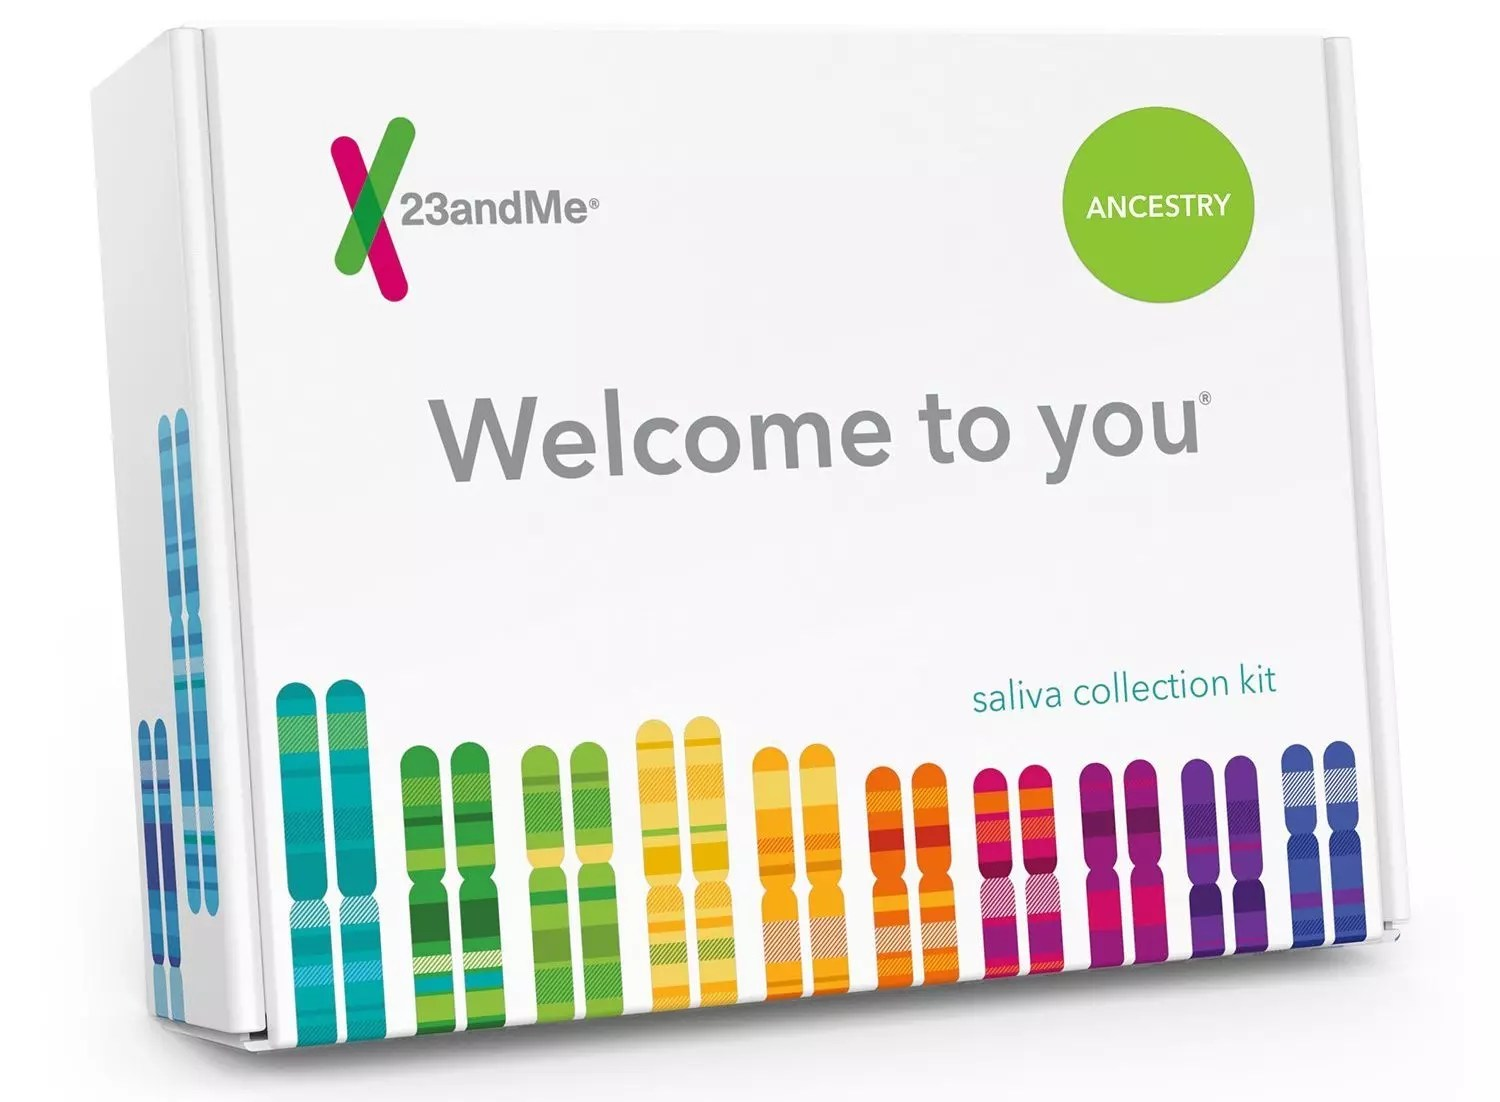 Masterly Parents Who Have Everything 2018 Gift Gifts Parents Who Love Dna Kit Buy It Here Birthday Gifts Parents 2016 Parents India Gifts gifts Gifts For Parents